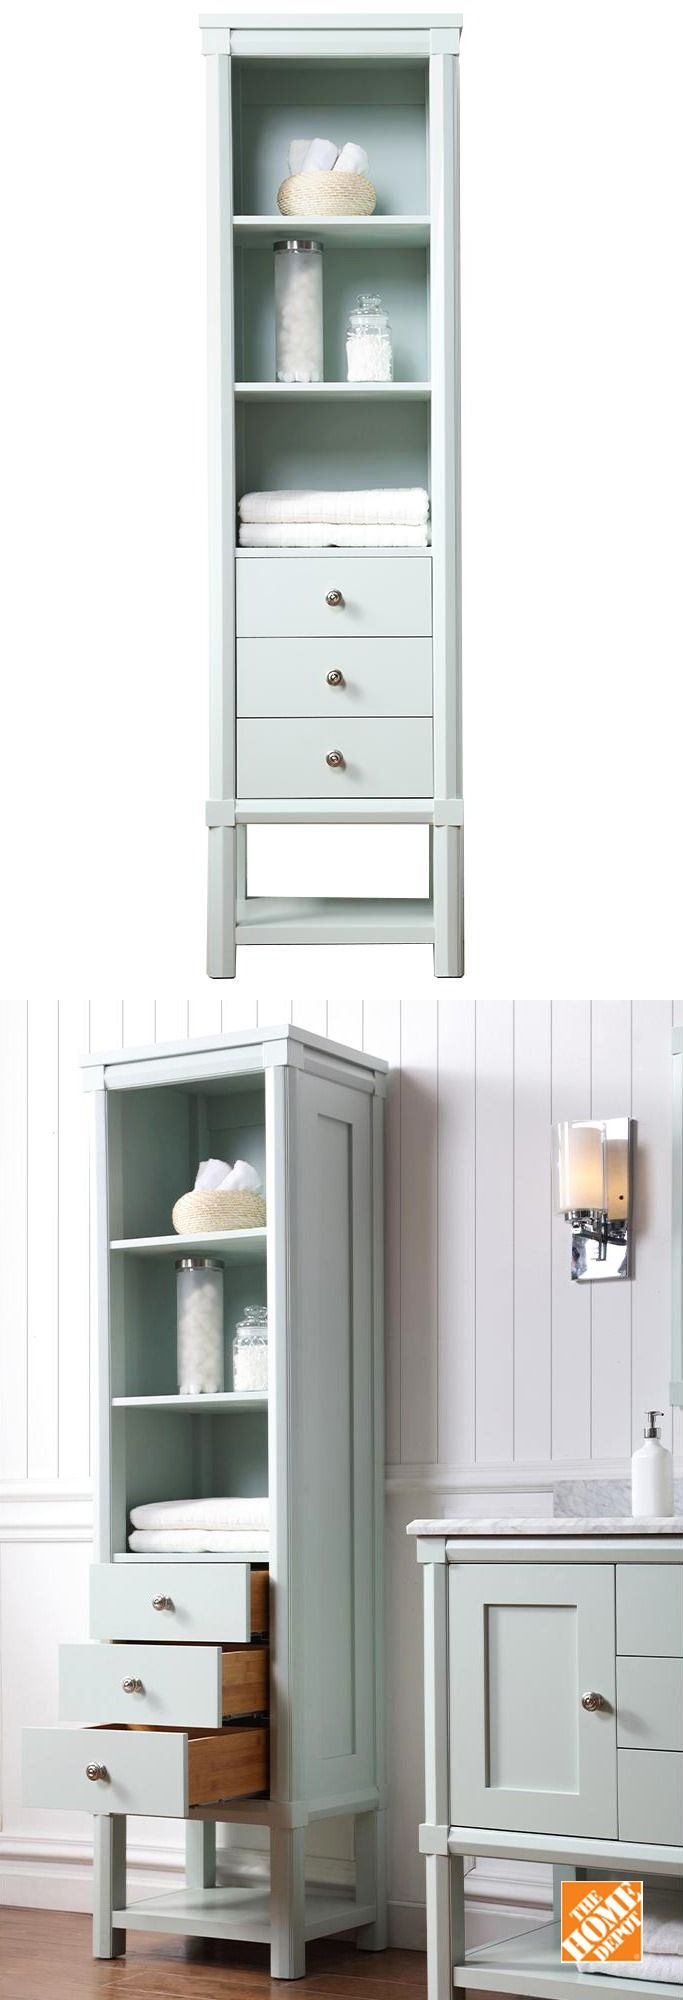 This bathroom side unit coordinates with the all items in the Sutton Bathroom collection, including the lovely vanity. This collection provides plenty of bathroom storage and fits especially well with a farmhouse or cottage style bathroom decor. This bathroom storage unit is one of The Home Depot's top-pinned products.